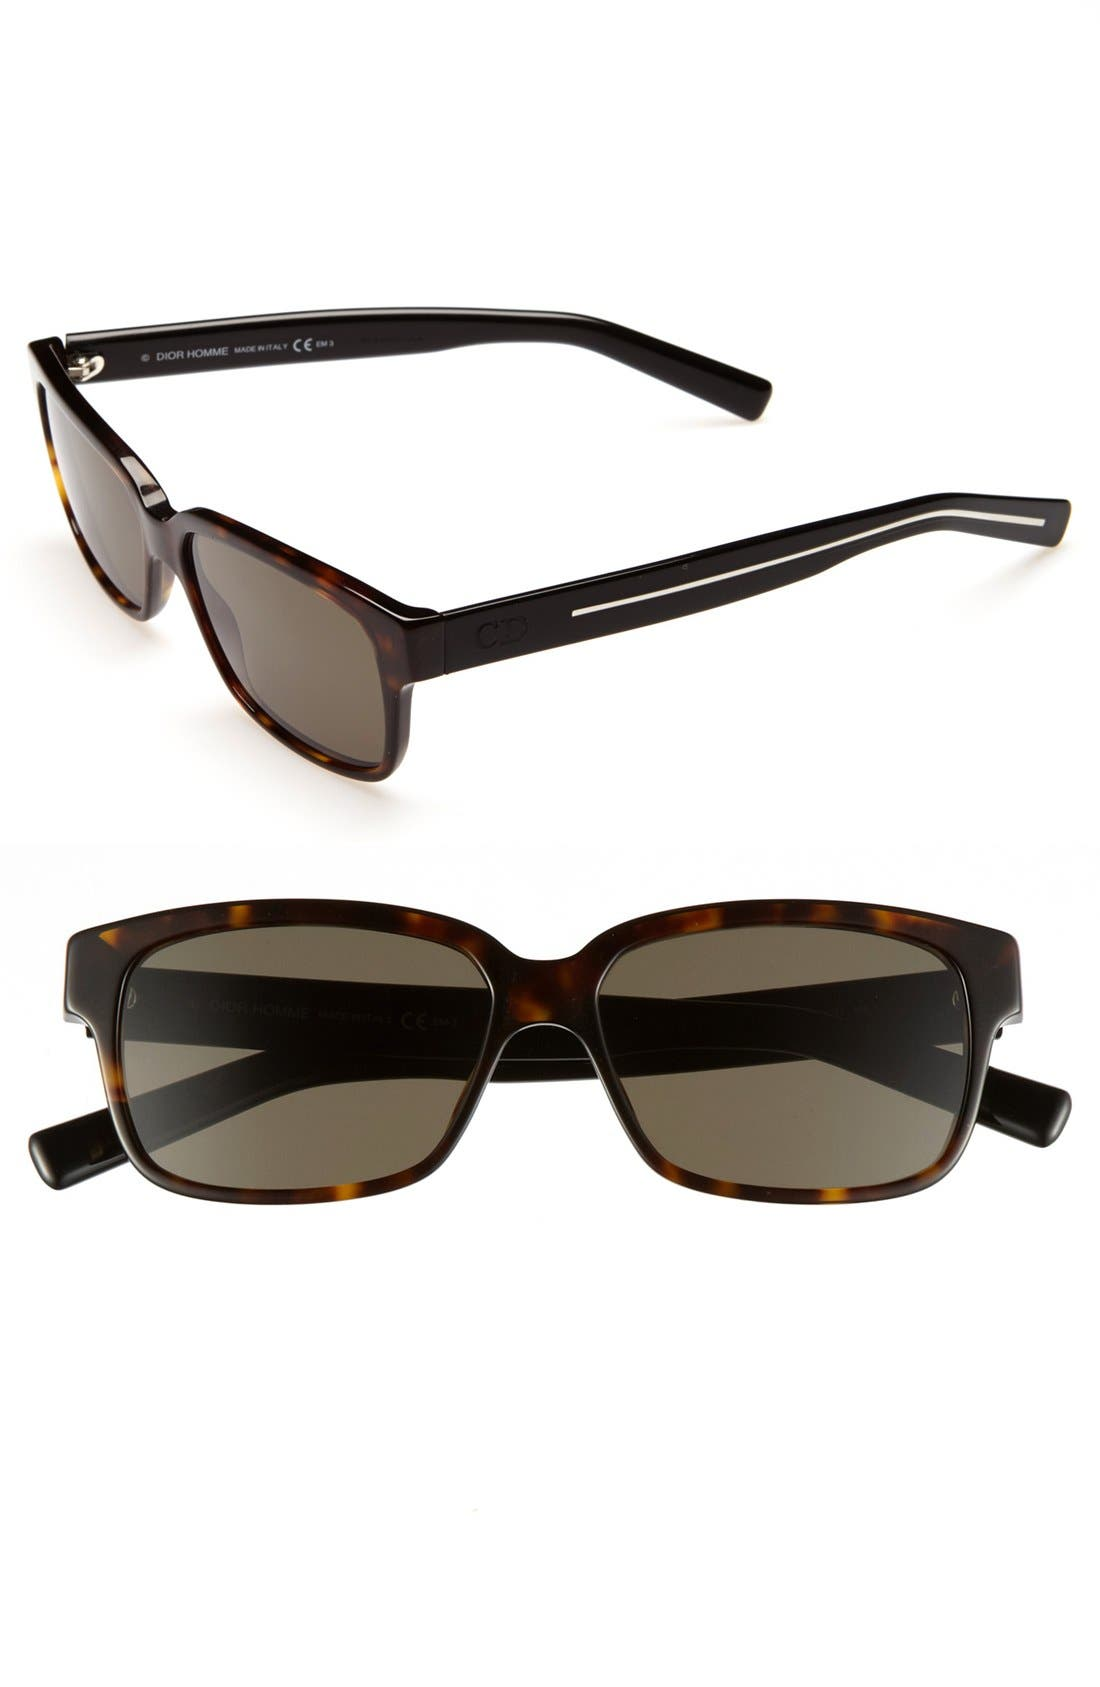 Alternate Image 1 Selected - Christian Dior '148S' 54mm Sunglasses